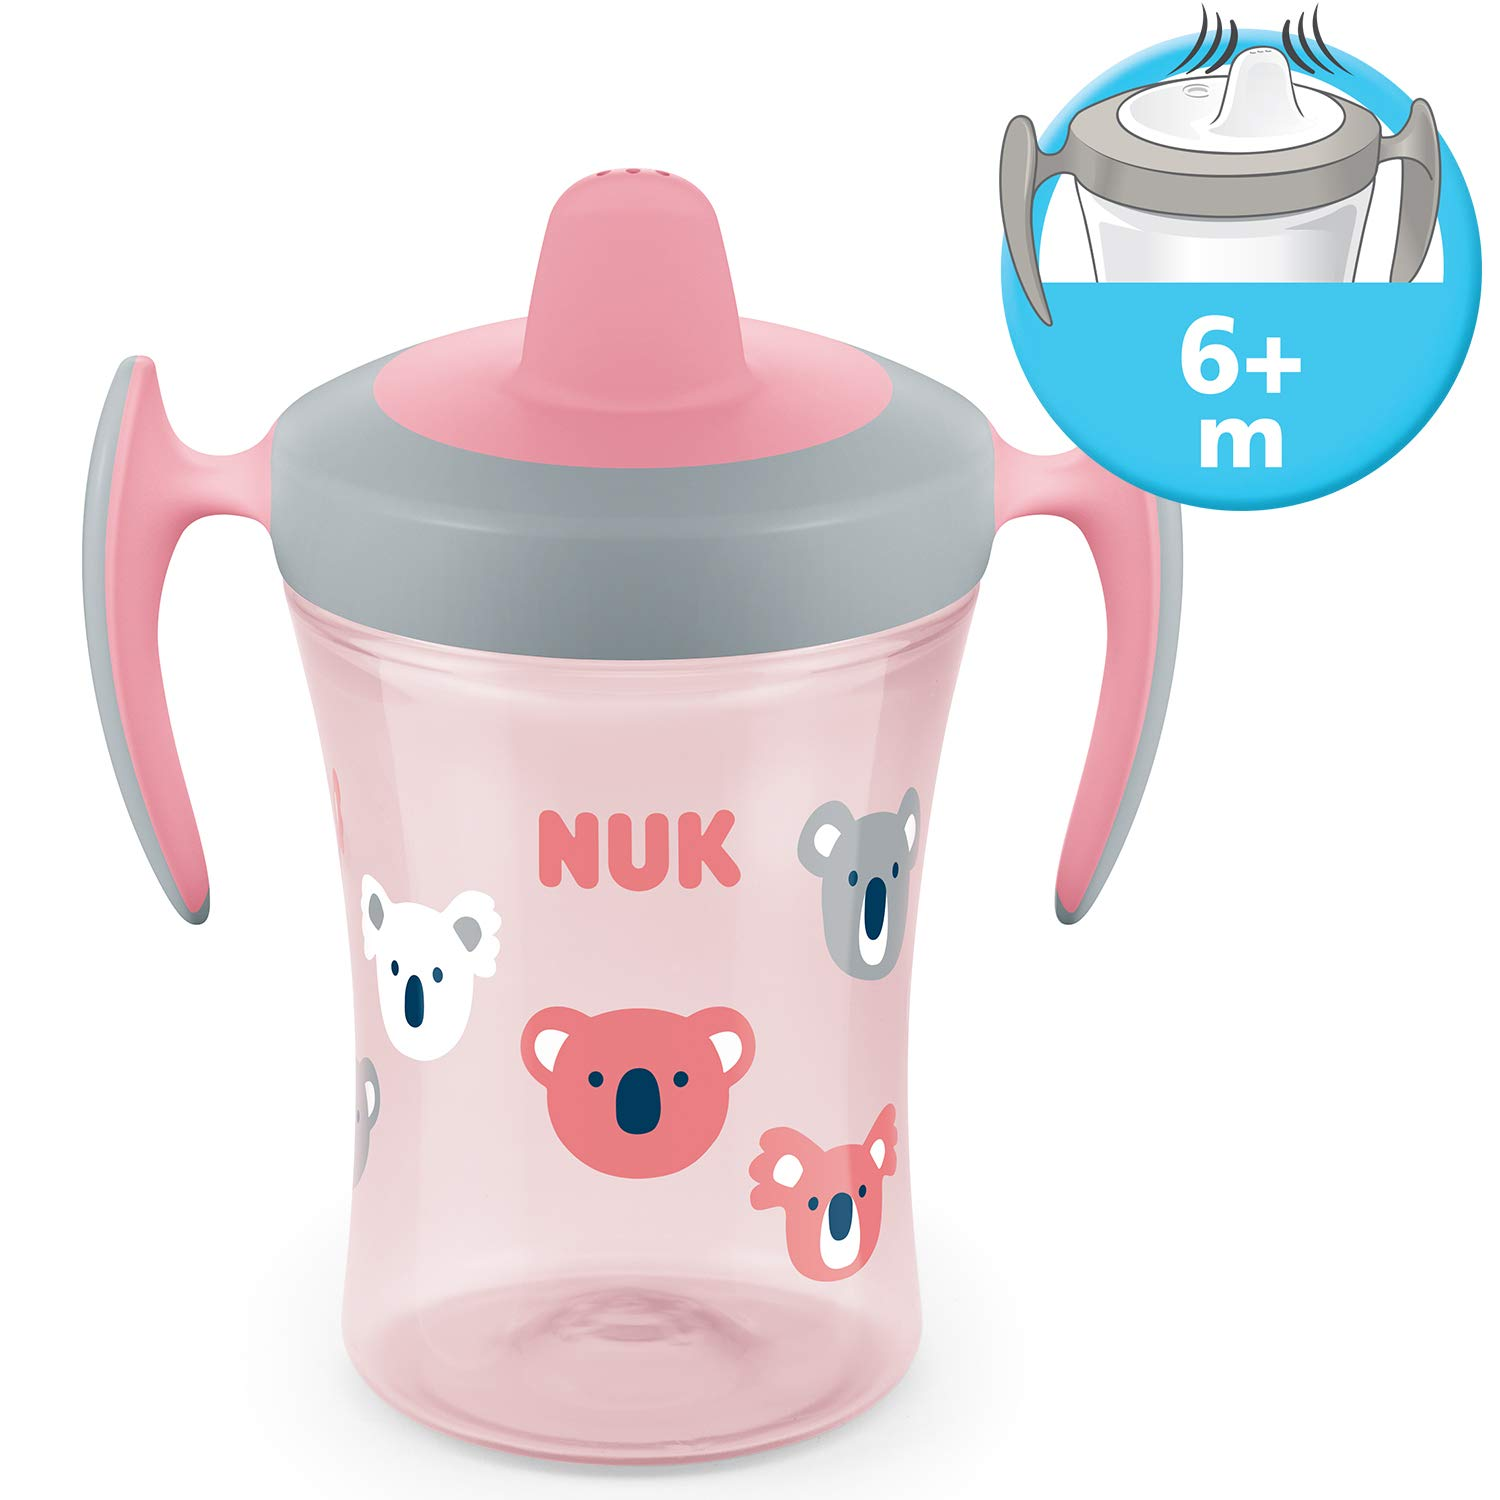 NUK Kit dapprentissage